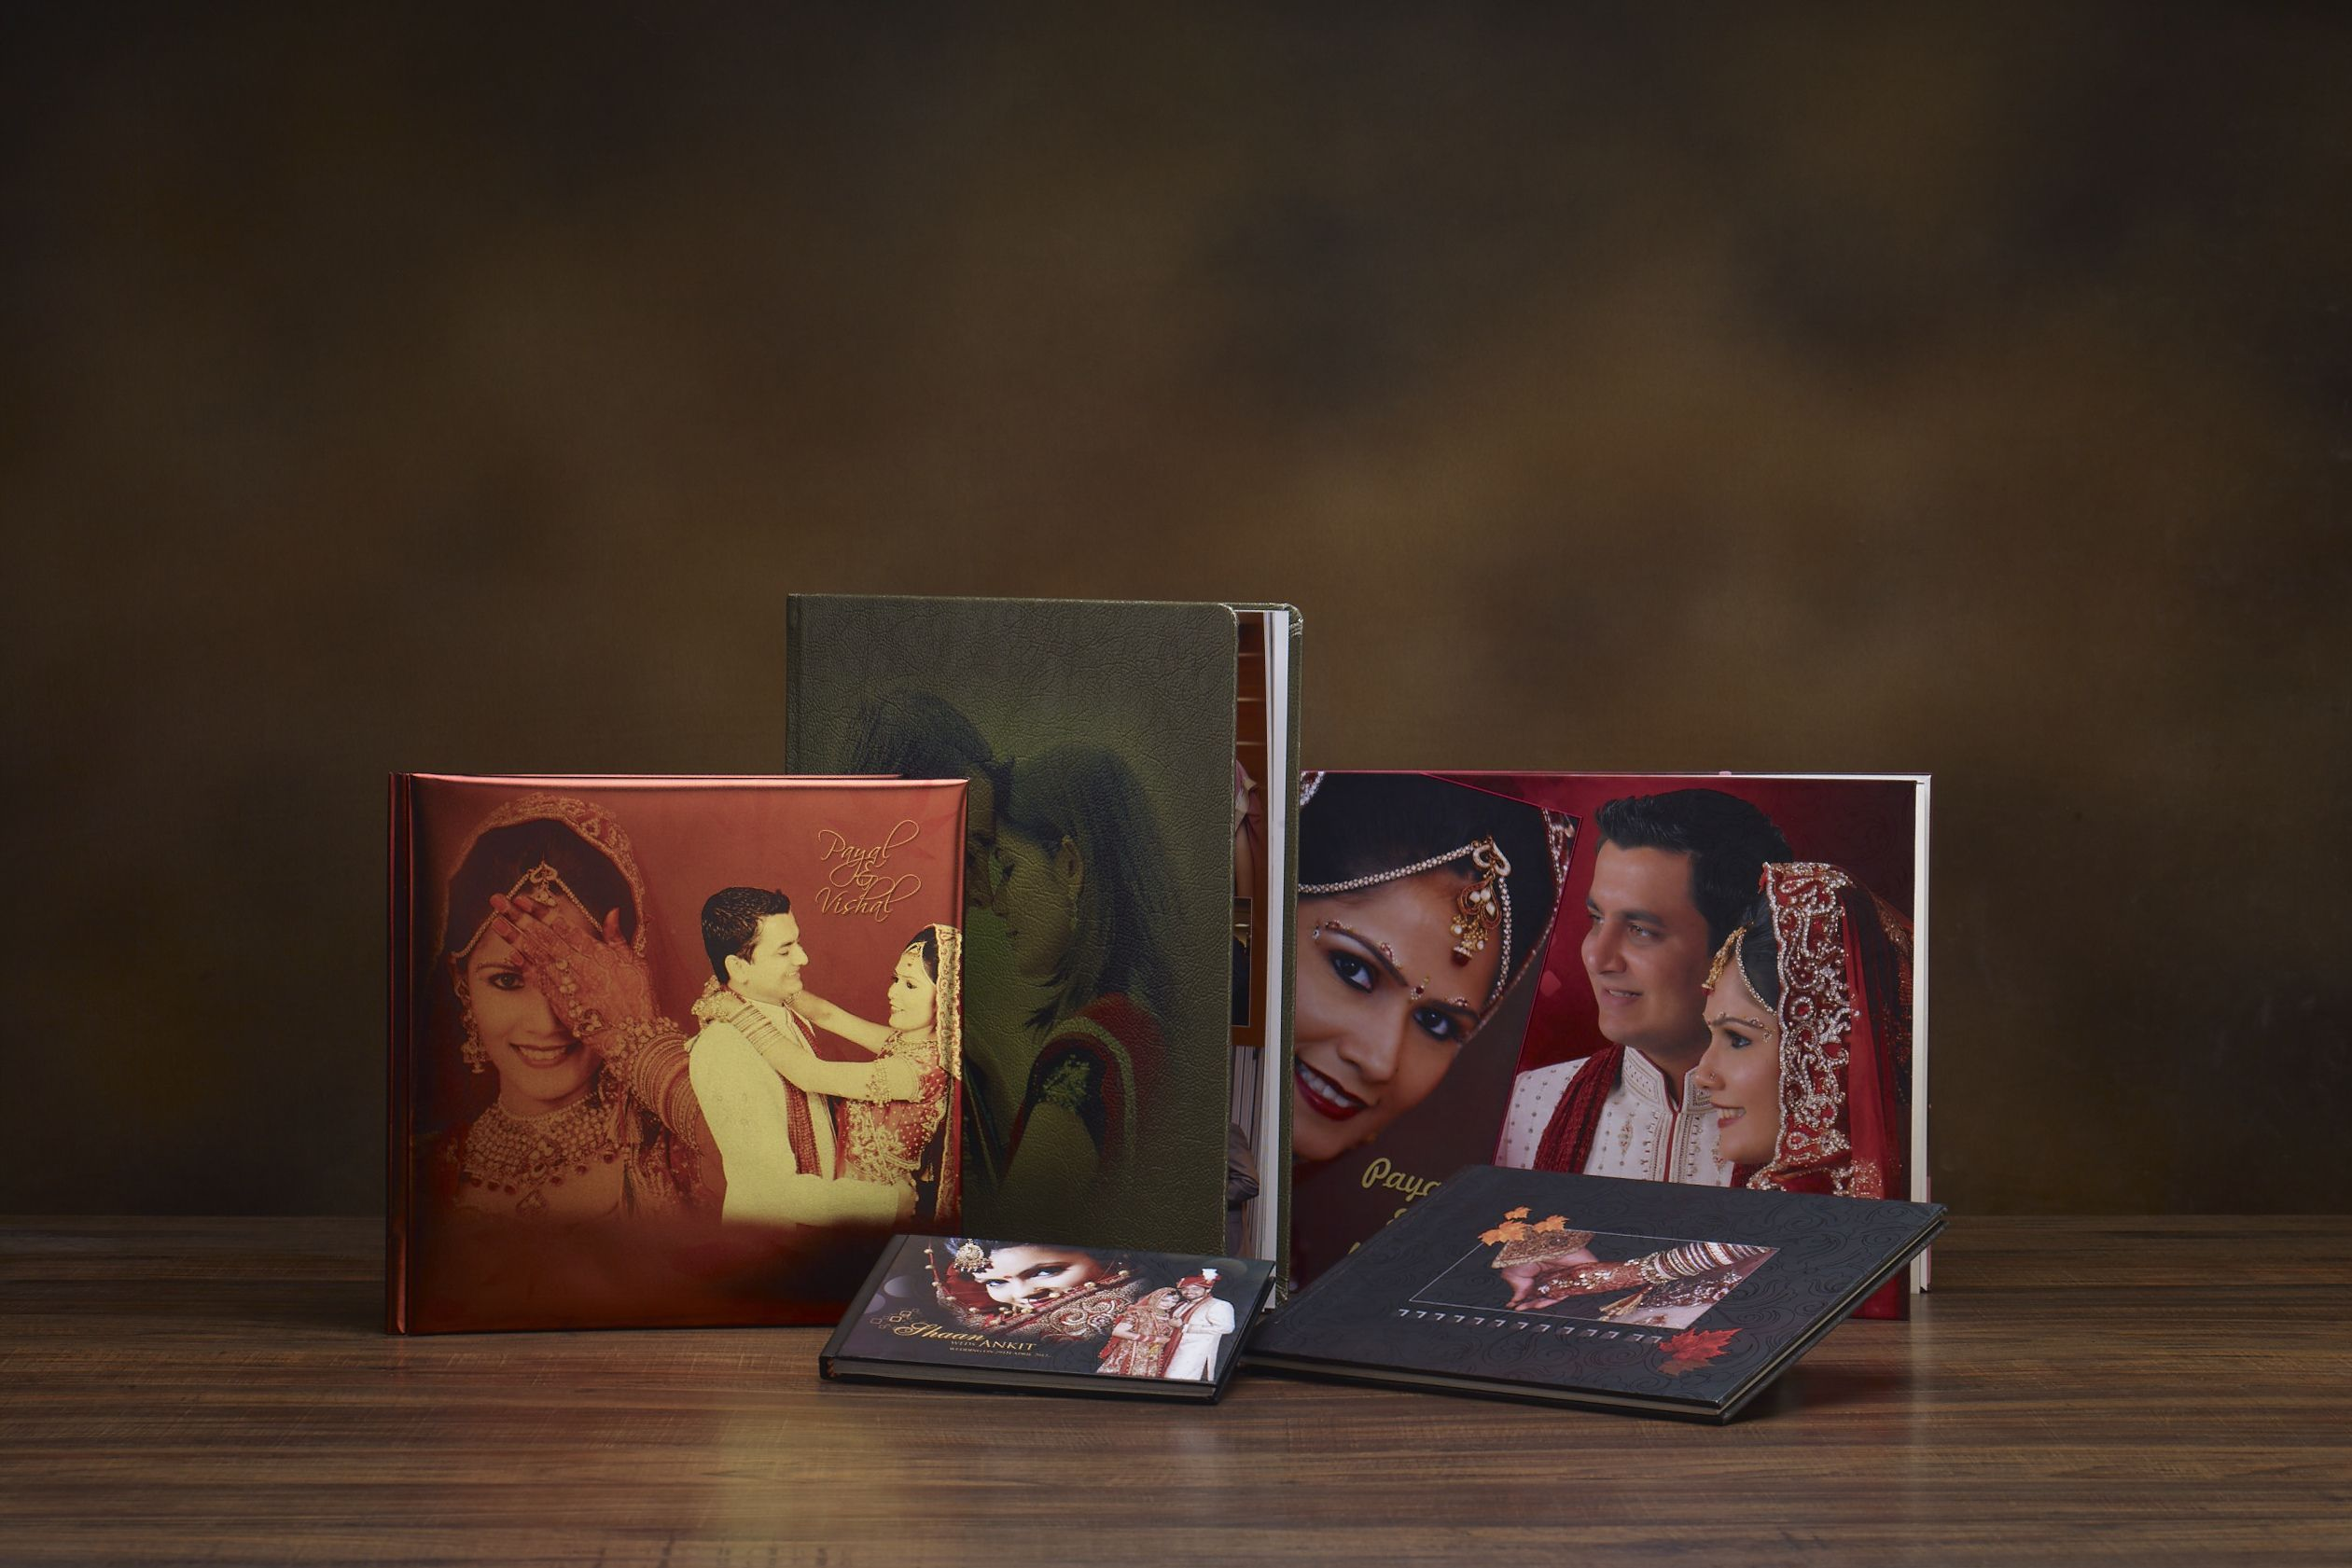 Books Coffee Table Book India Wedding Album Design India